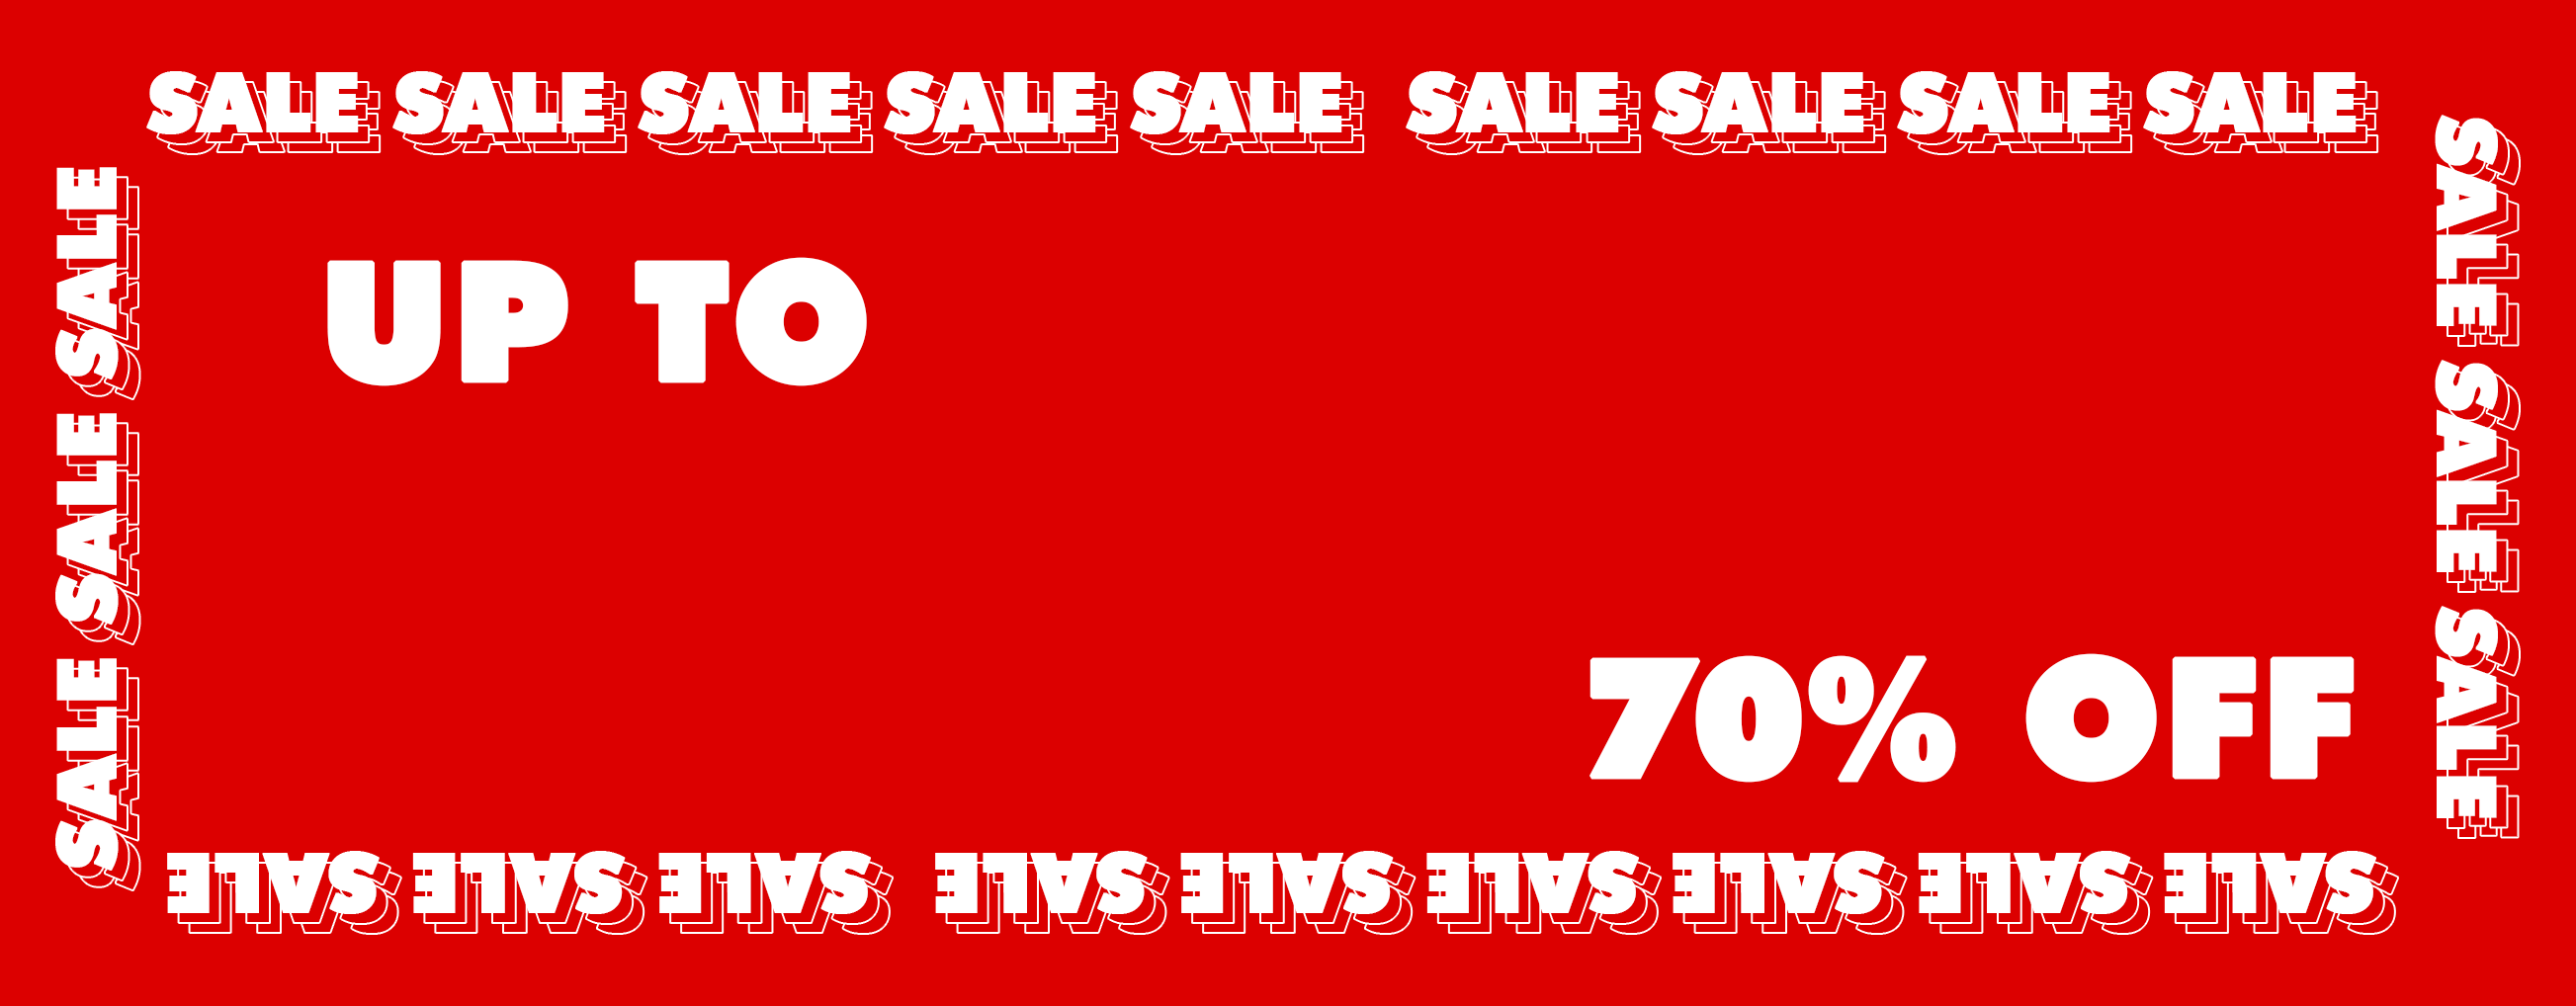 Summer Sales Up To 70% Off